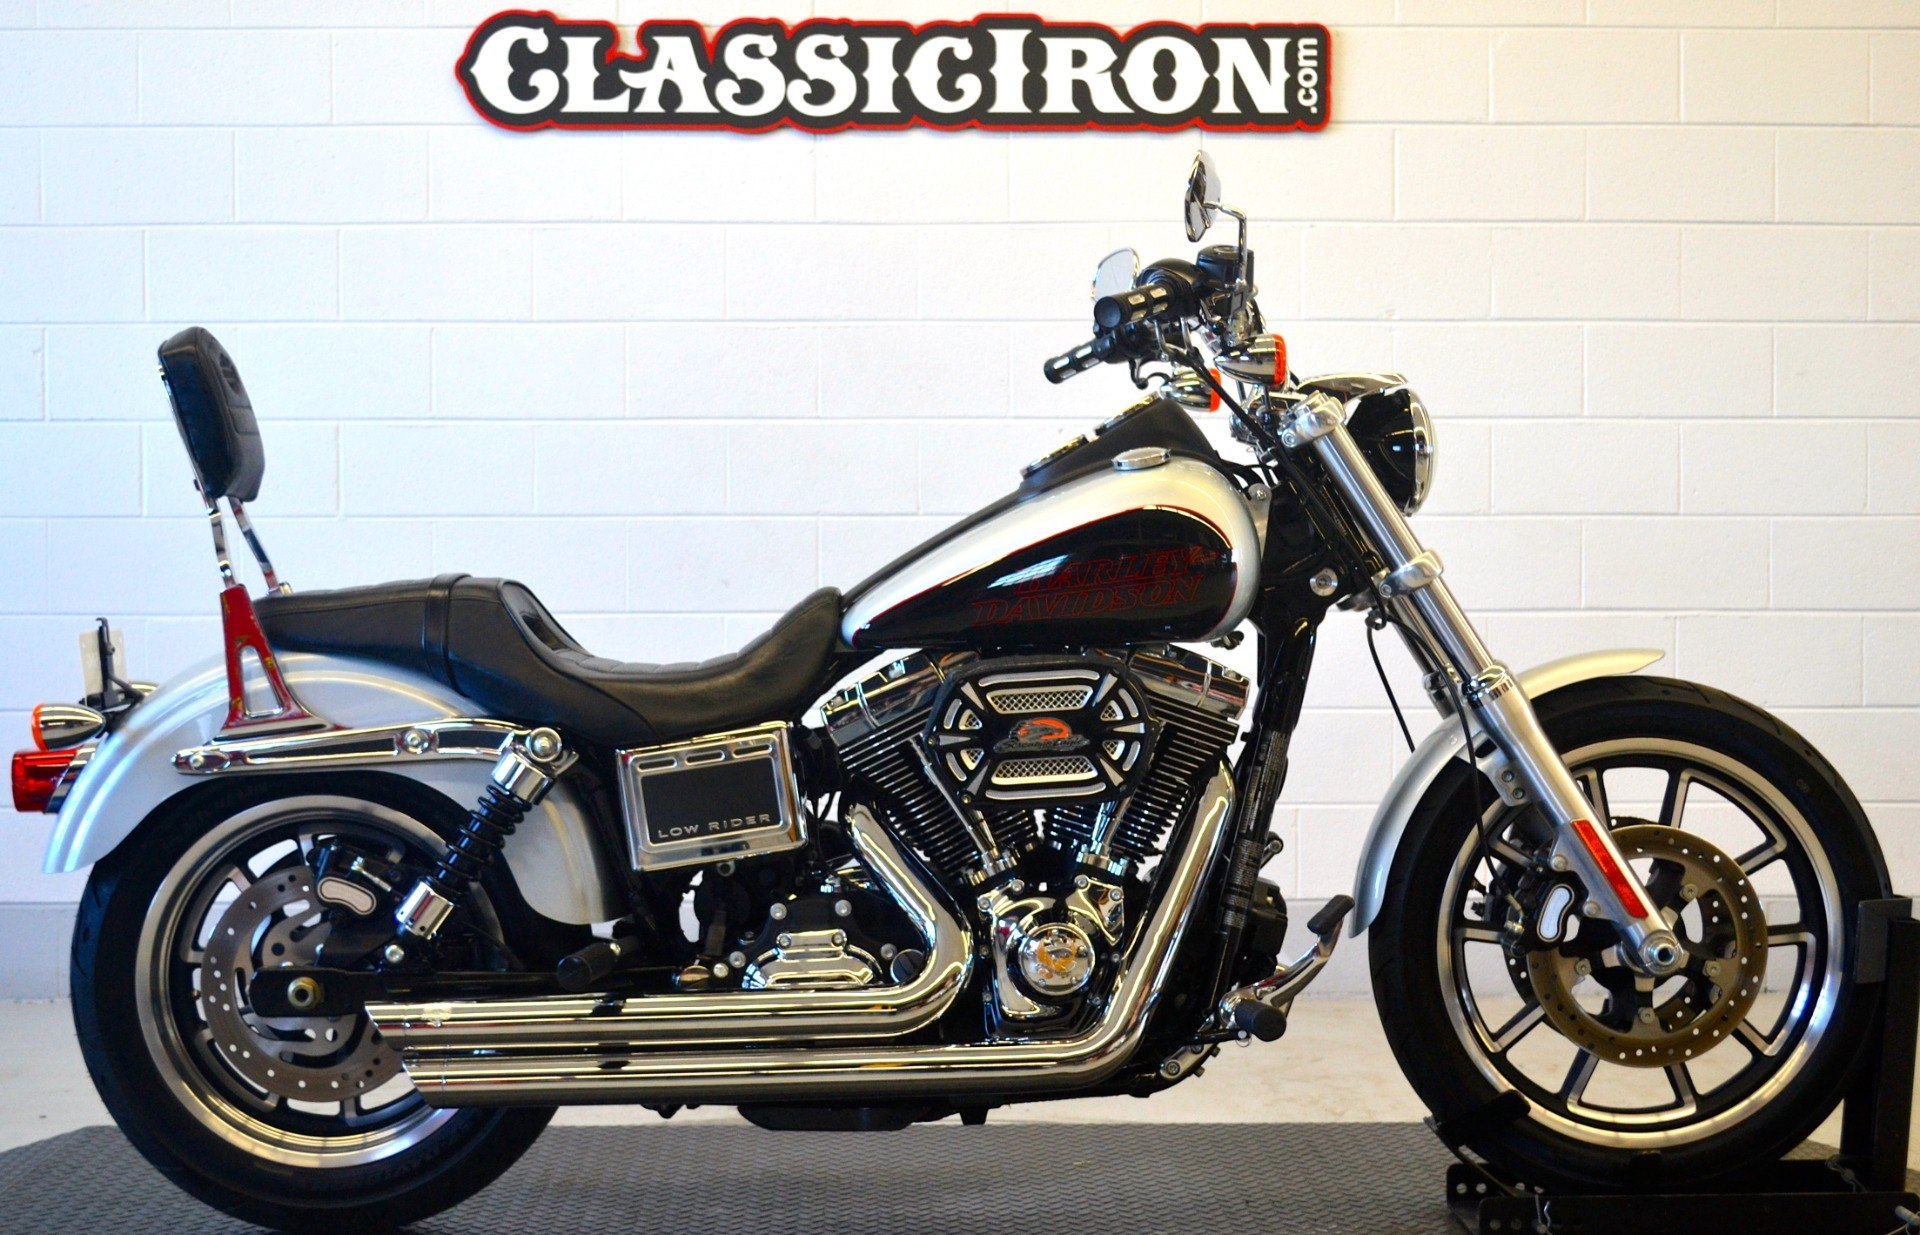 2017 harley davidson low rider review total motorcycle autos post. Black Bedroom Furniture Sets. Home Design Ideas